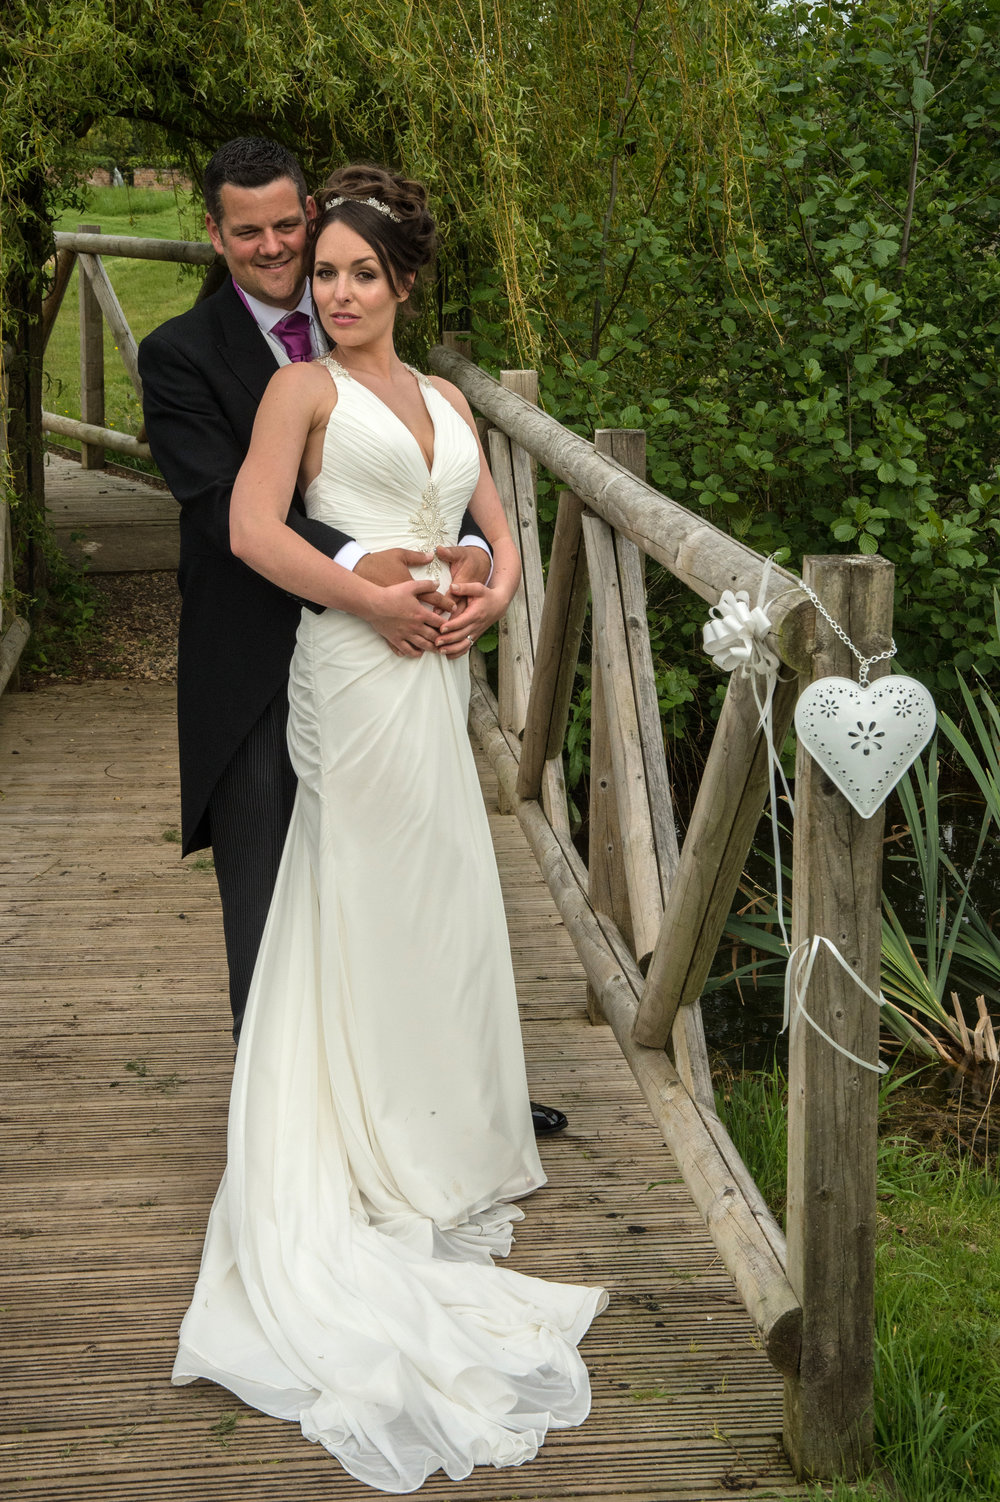 Bride and Groom Wooton Park Henley in Arden